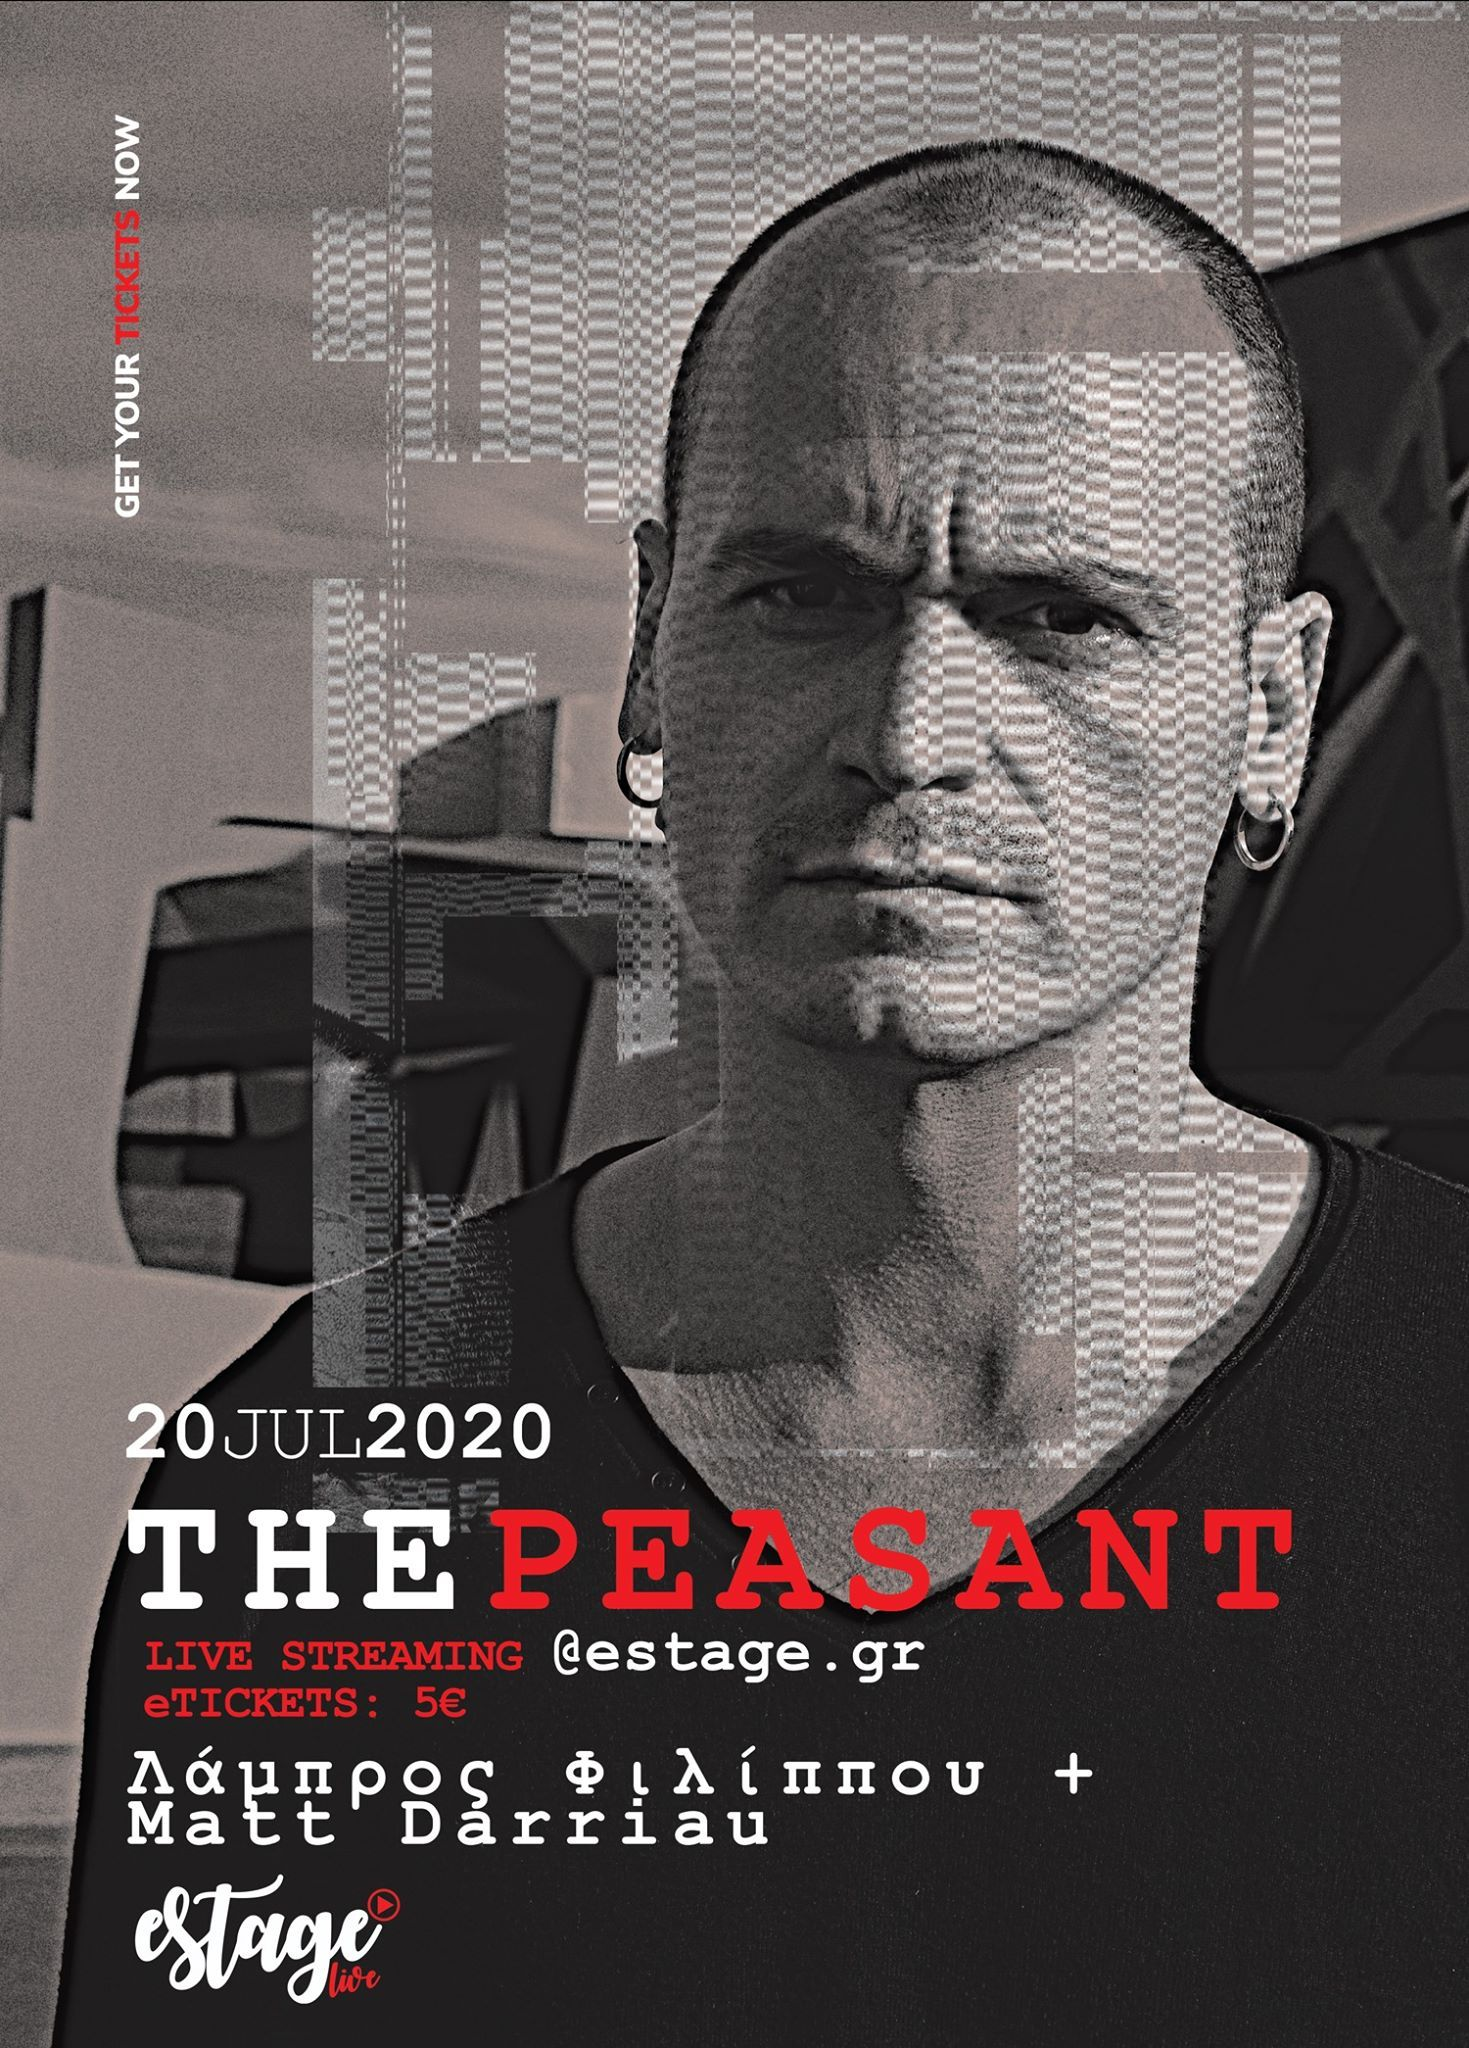 The Peasant | Labros Filippou + Matt Darriau